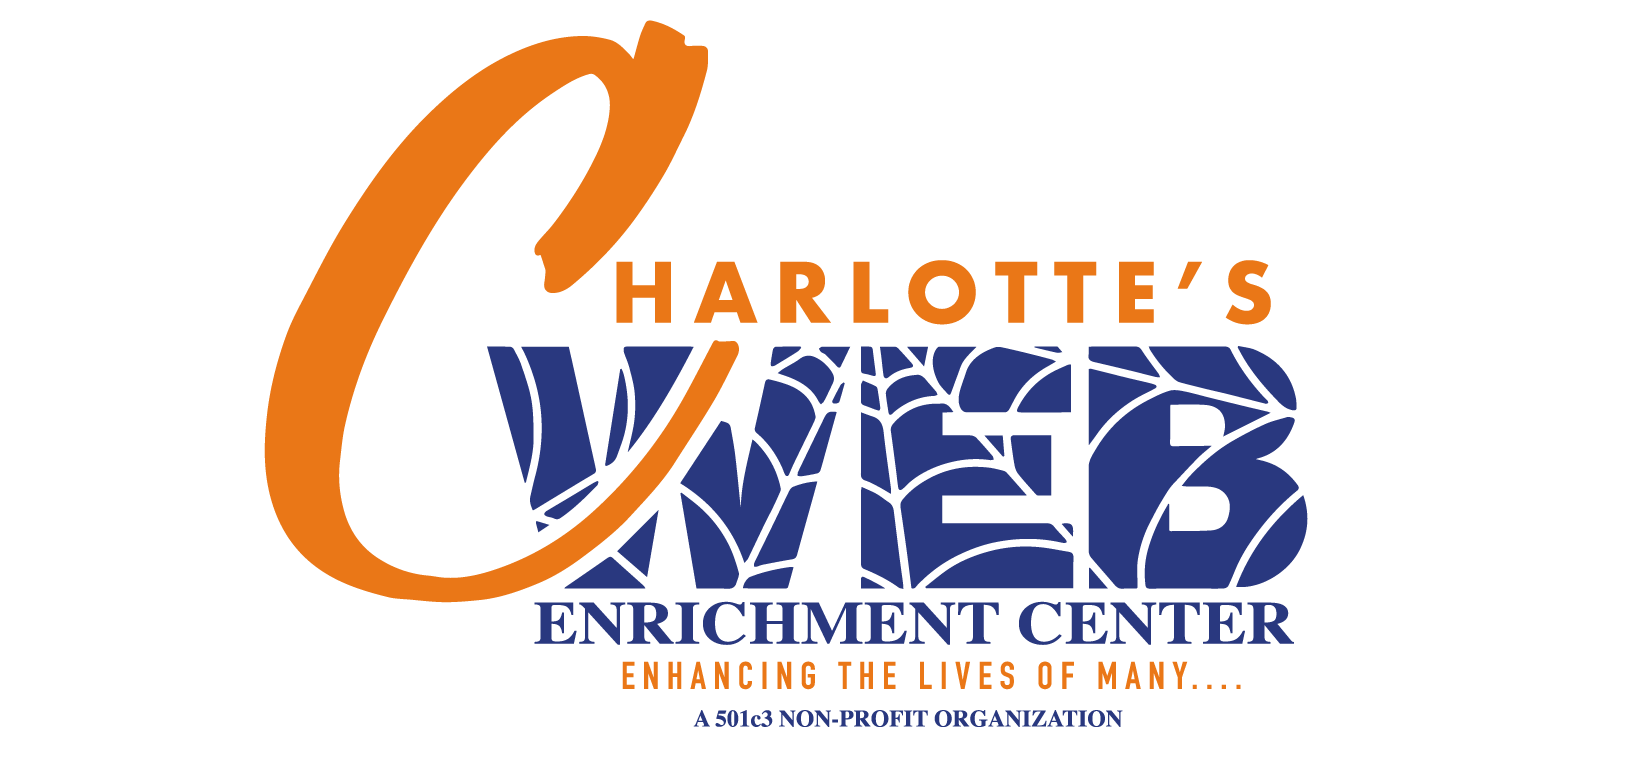 Charlotte's Web Enrichment Center, Inc